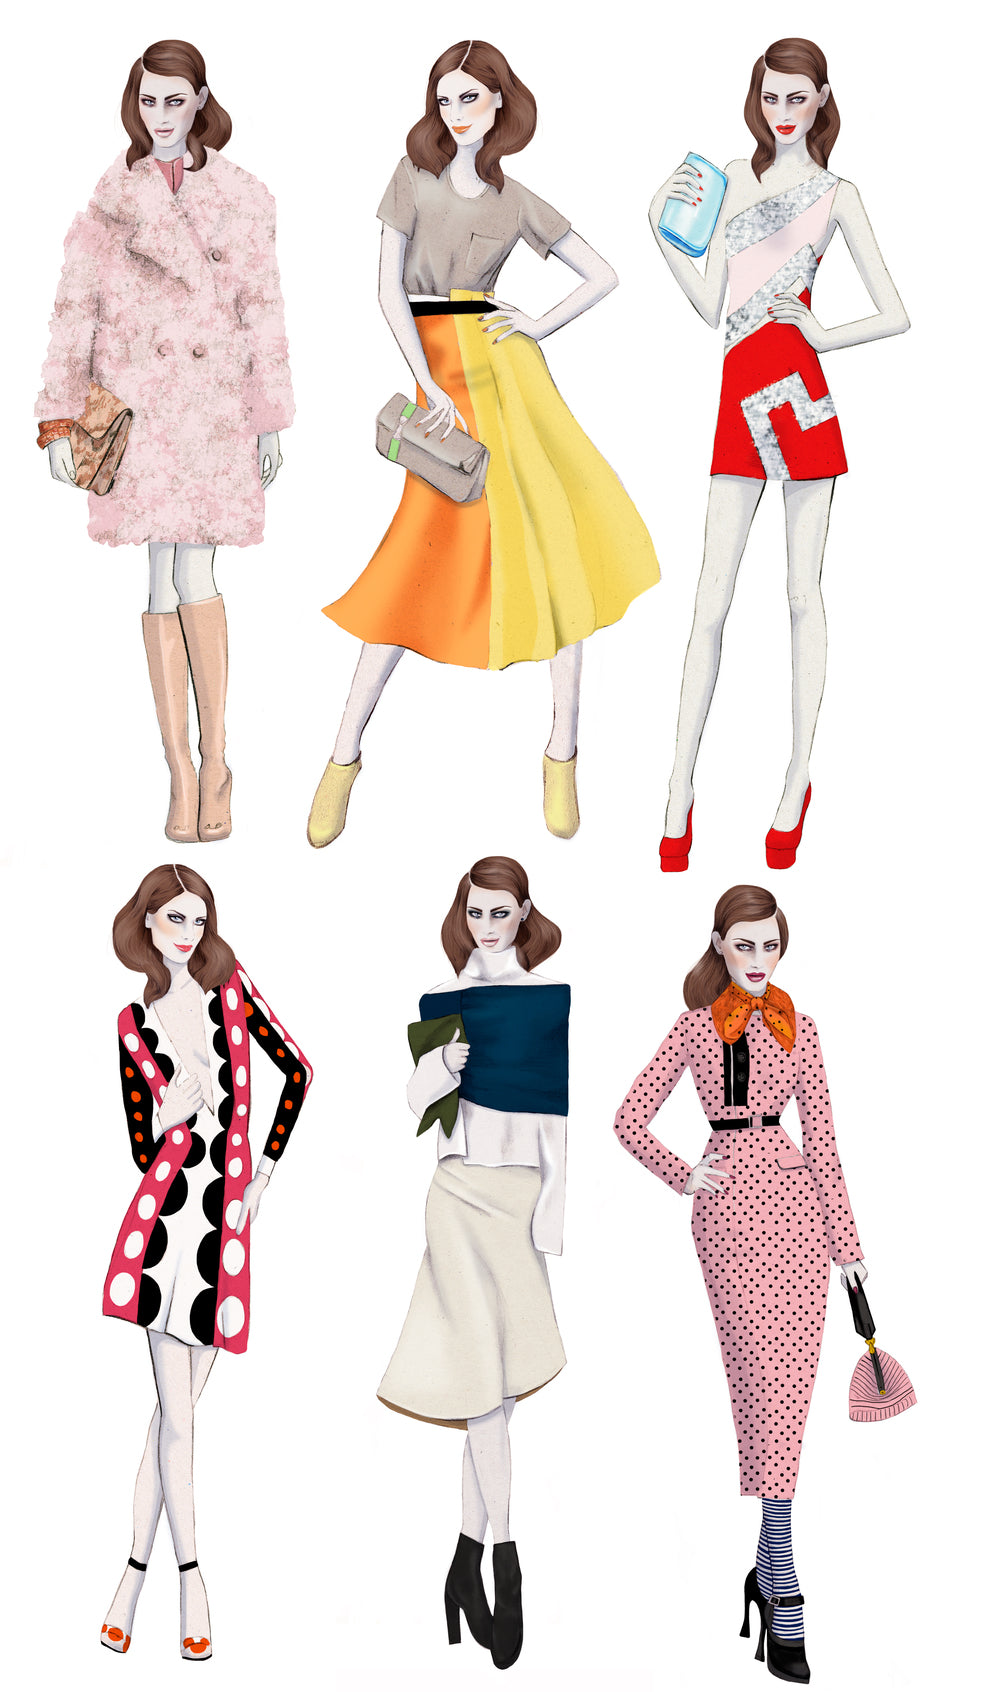 Mrs Mills London Sunday Times fashion illustration by Melbourne based illustrator Kelly Thompson